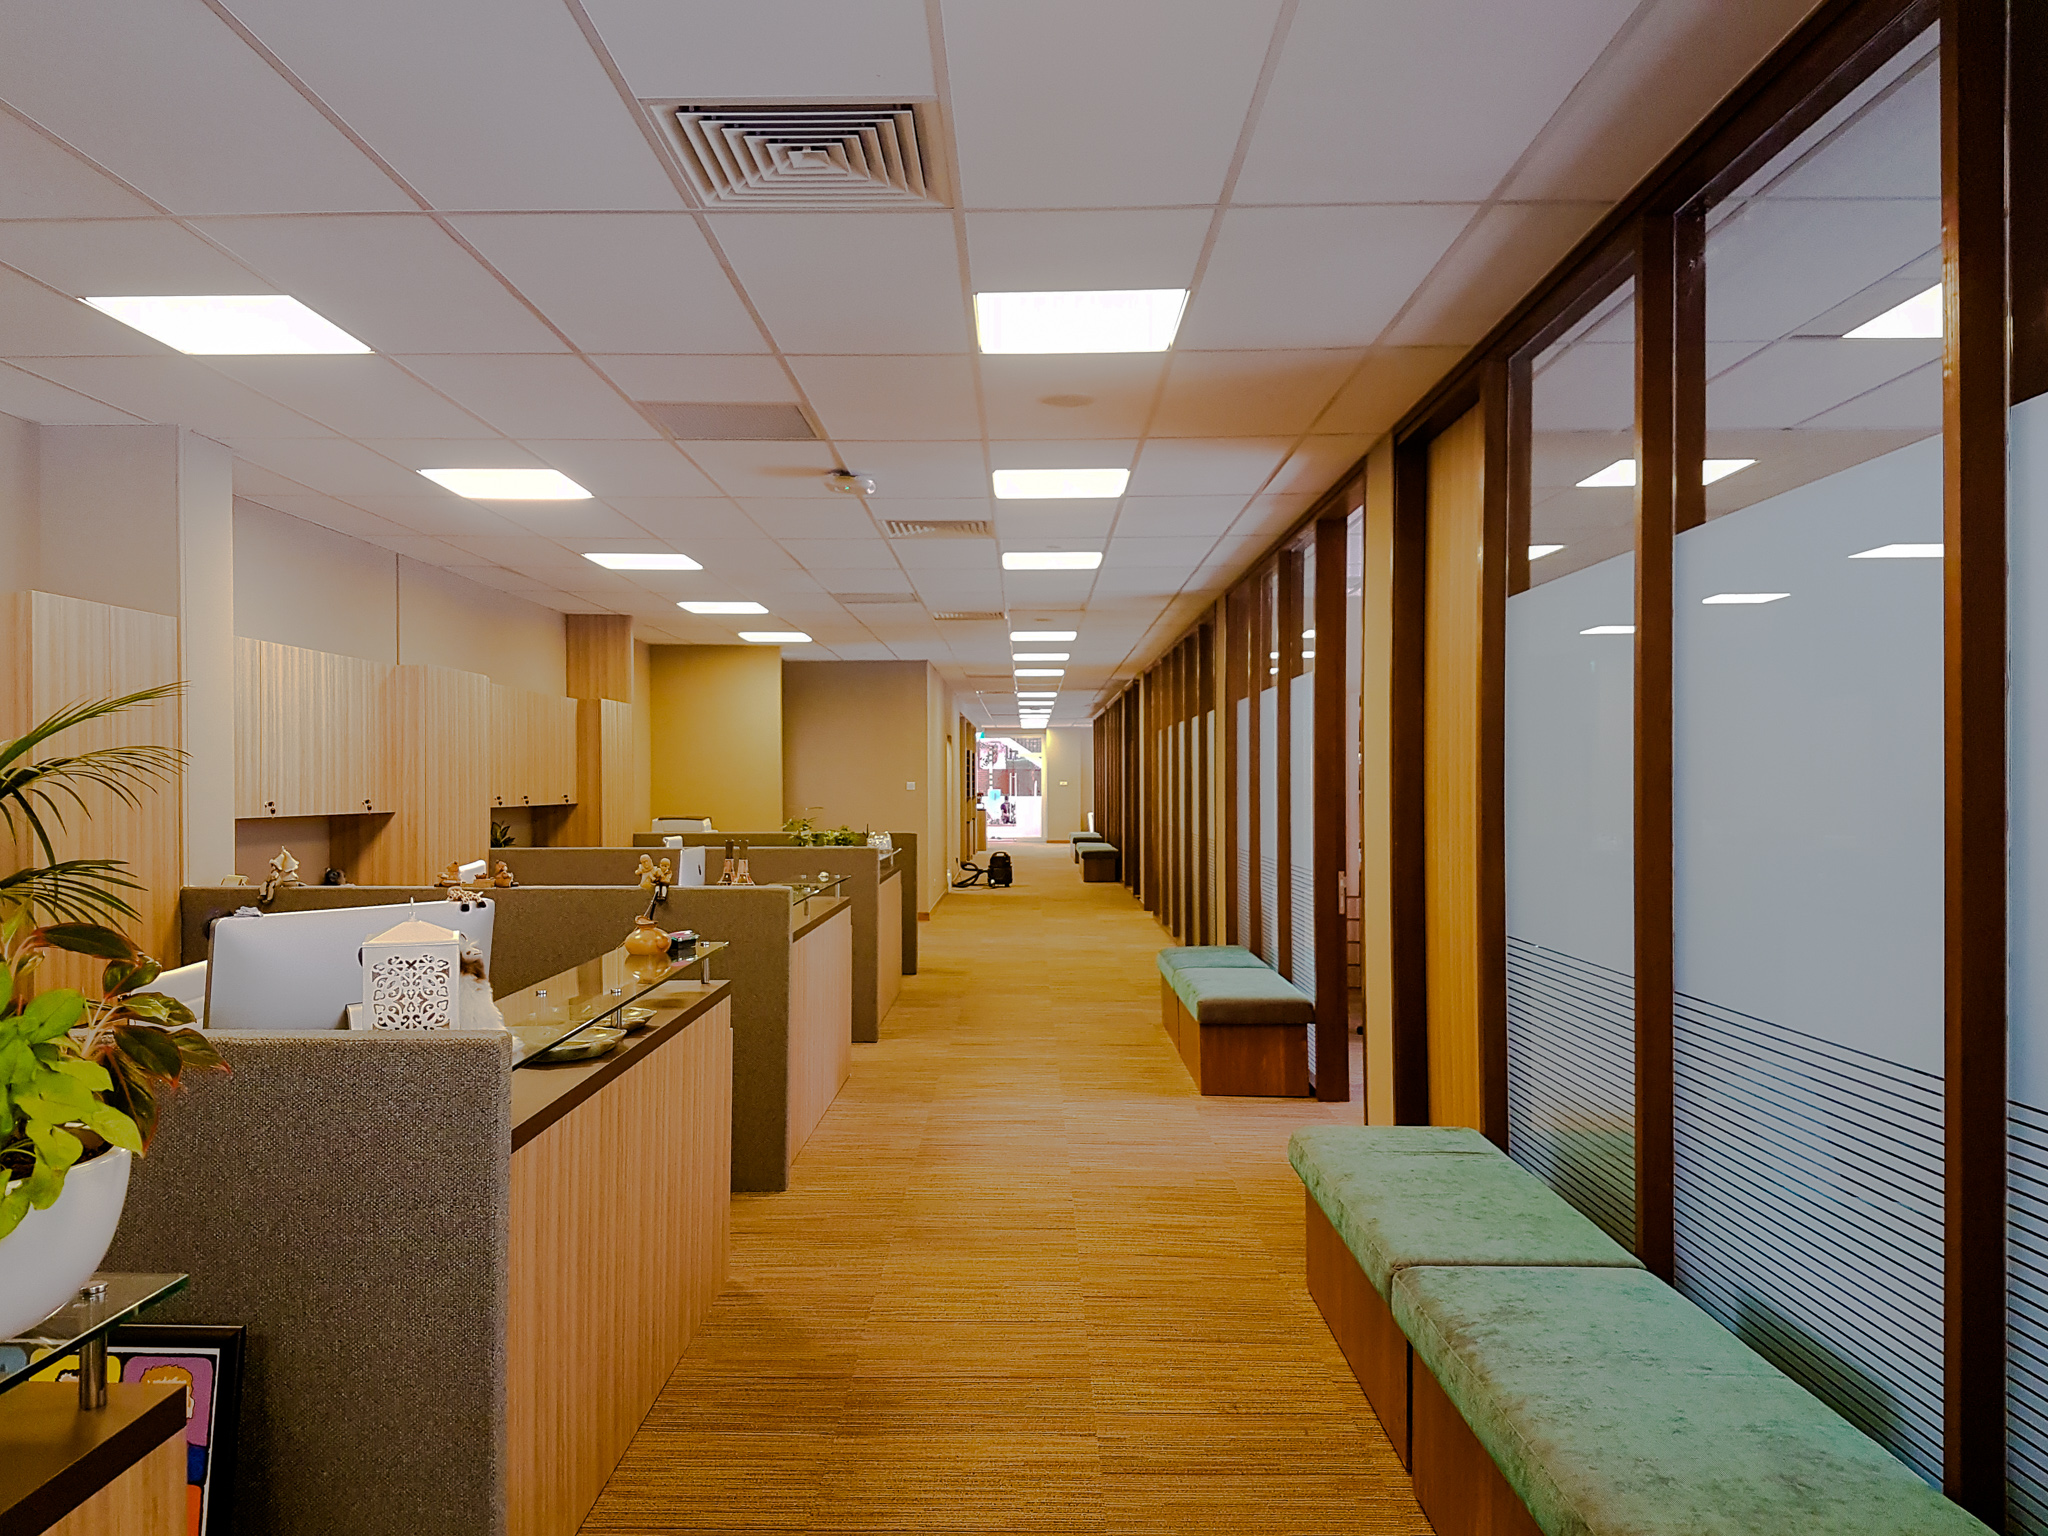 Singapore American School. we are a Interior design and build firm based in Singapore, Malaysia and China.